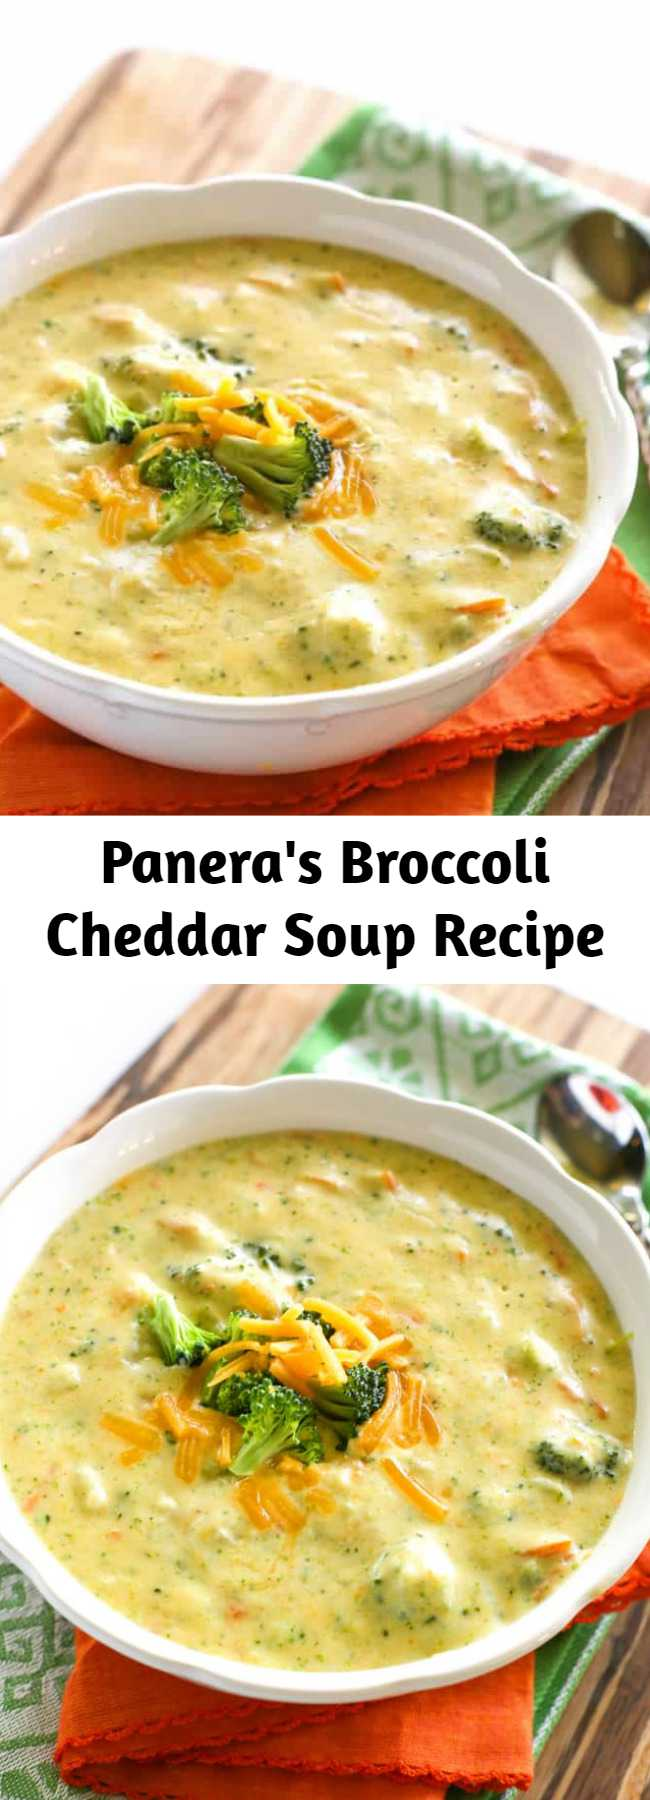 Panera's Broccoli Cheddar Soup Recipe - Creamy broccoli cheddar soup is comfort food at its best and this Panera's Broccoli Cheddar Soup is an easy dinner that hits the spot.